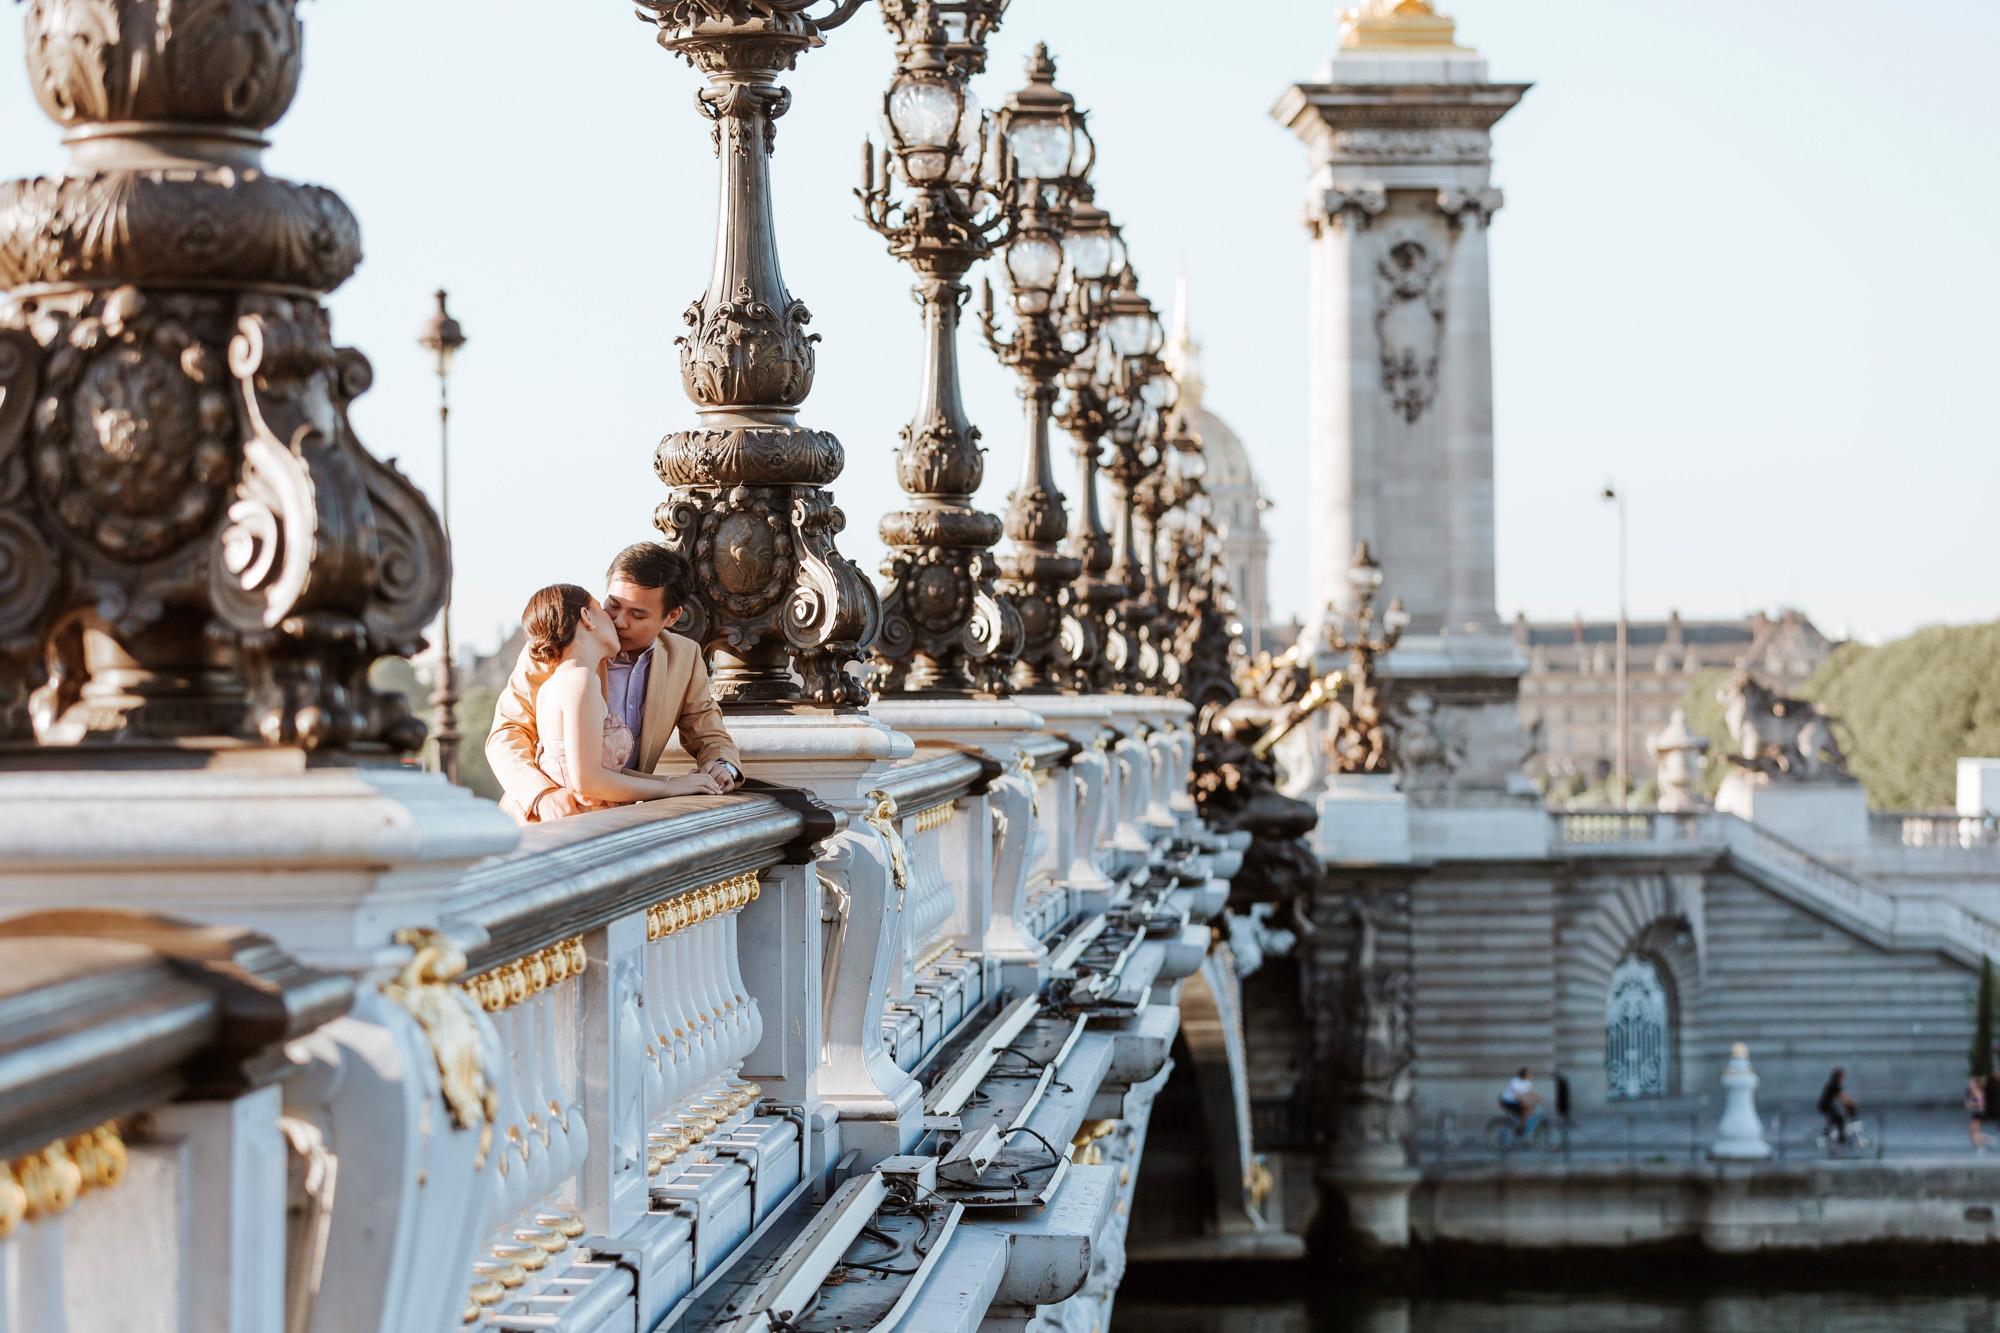 Pre-wedding couple portrait session at Pont Alexandre III captured by Paris Photographer Federico Guendel